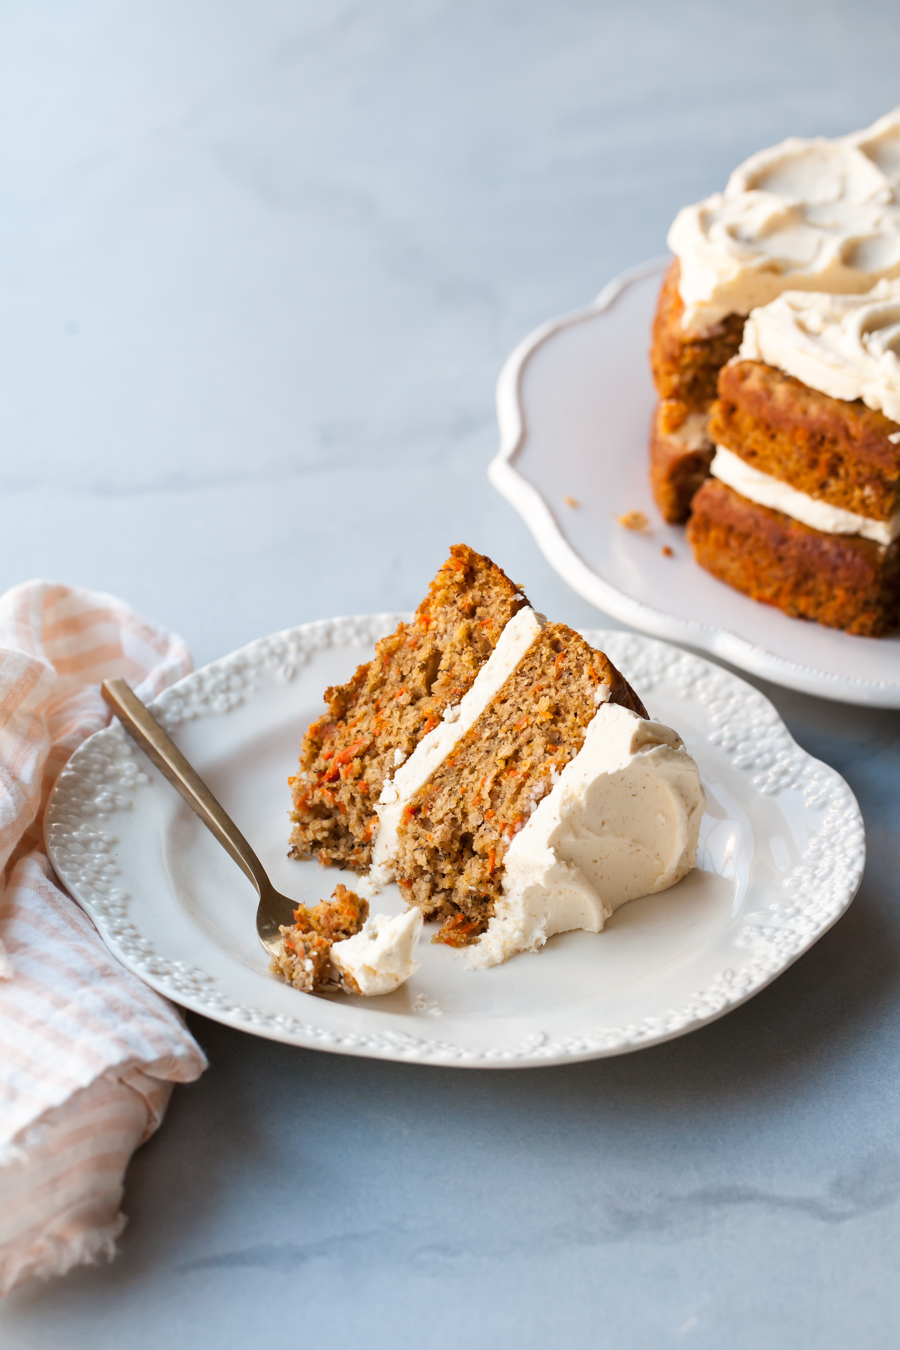 The best Carrot Cake Recipe with brown butter frosting